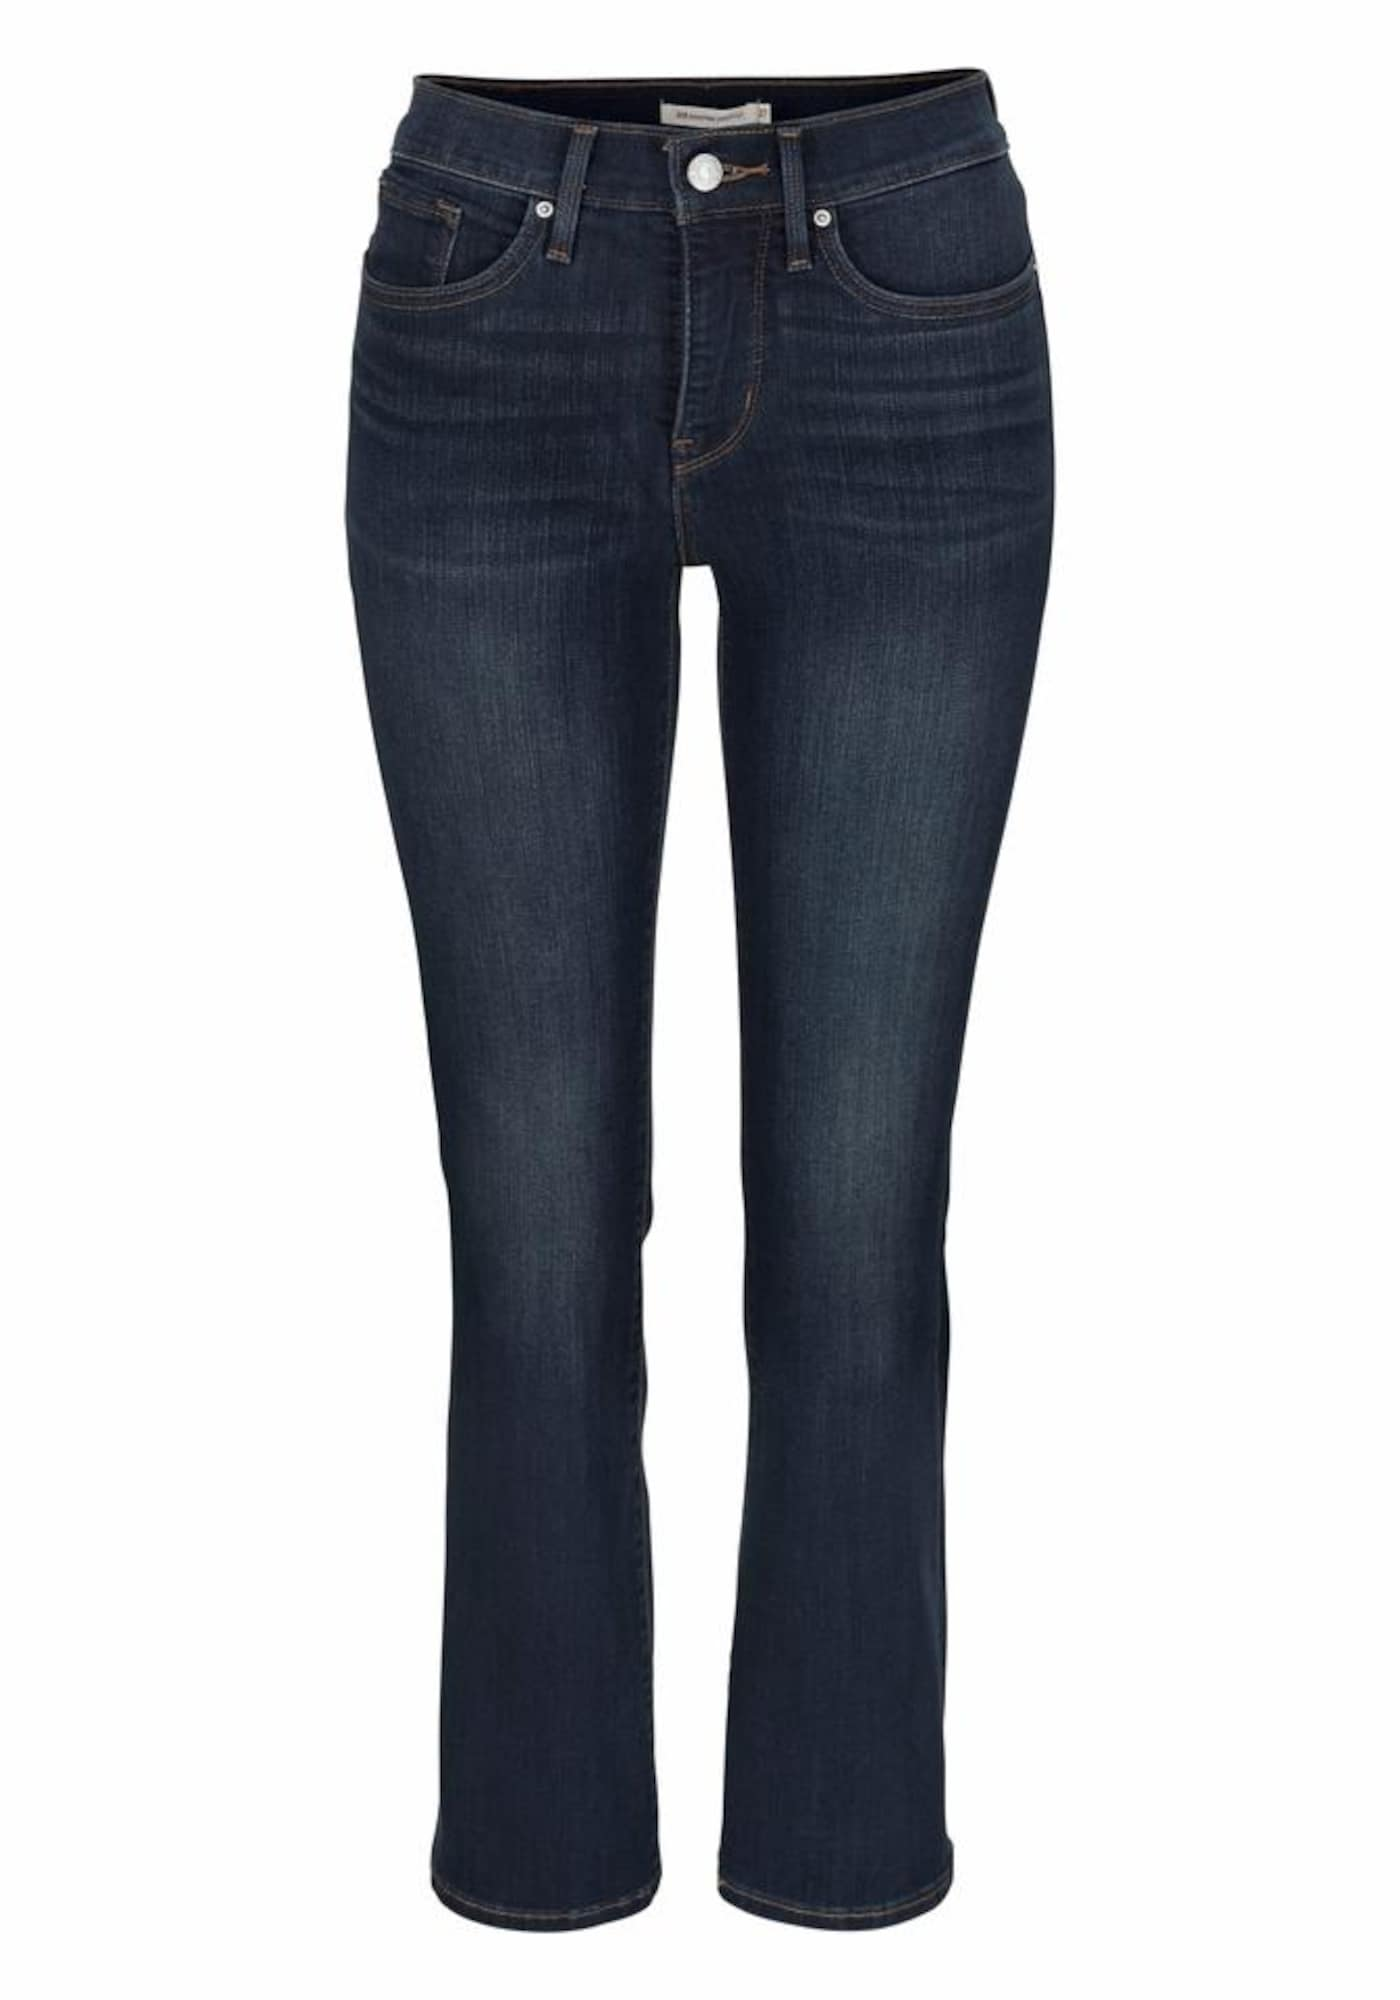 LEVI'S Dames Jeans 315 Shaping Boot donkerblauw